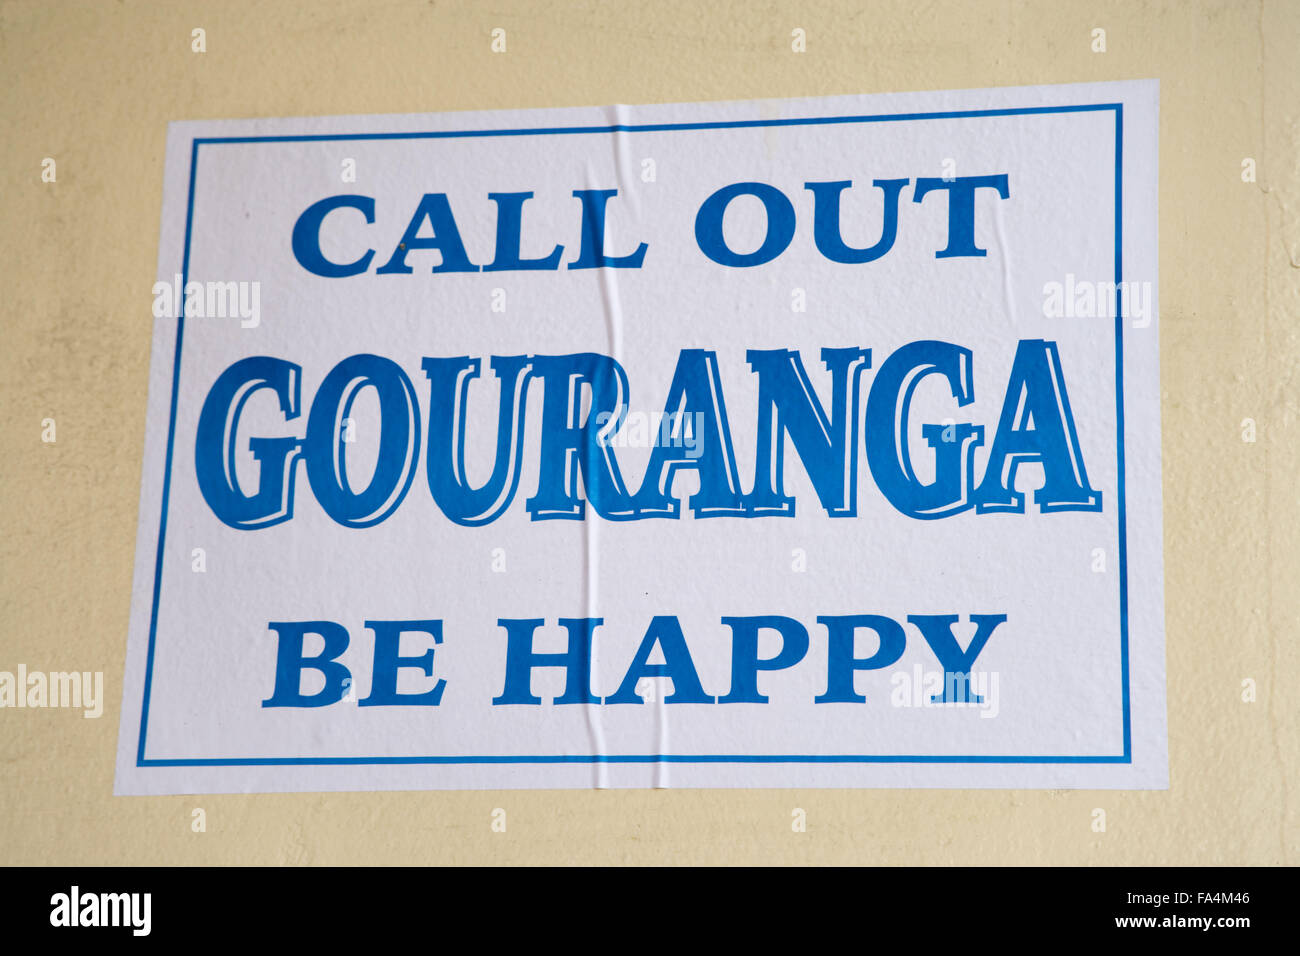 Poster saying Call out Gouranga be happy, Hare Krishna mantra - Stock Image